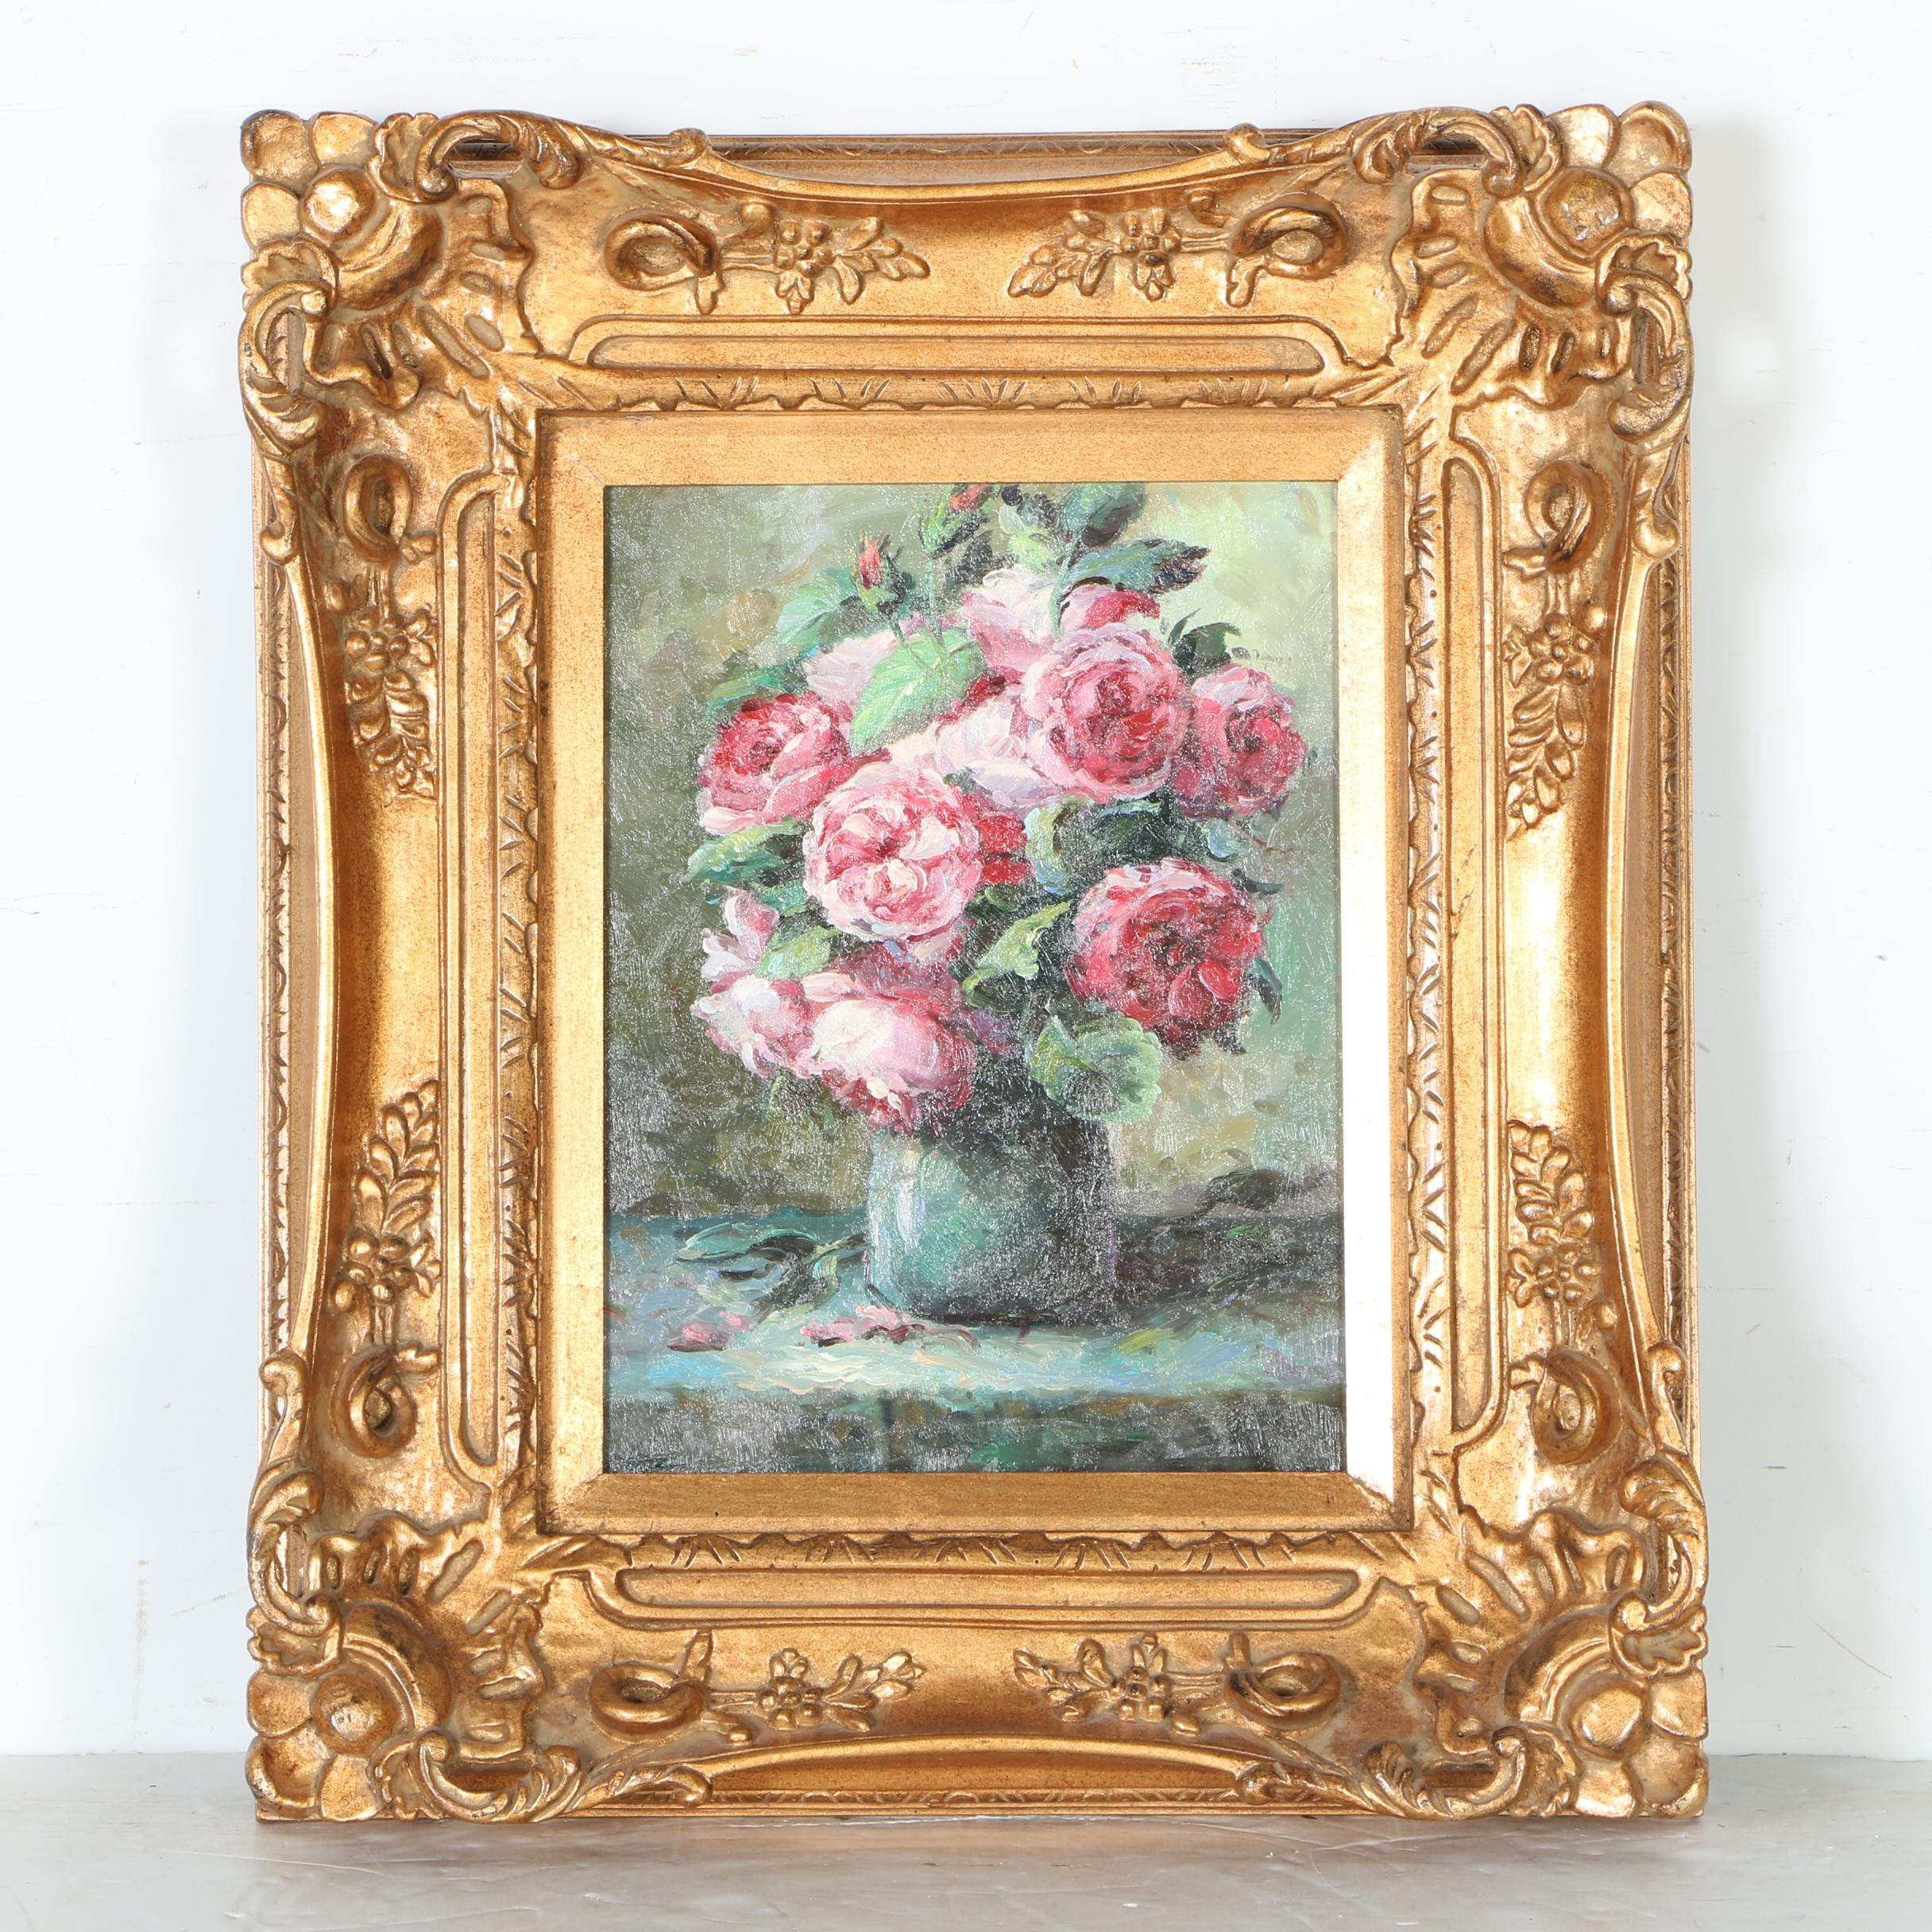 Oil Painting on Canvas of an Arrangement of Pink Roses